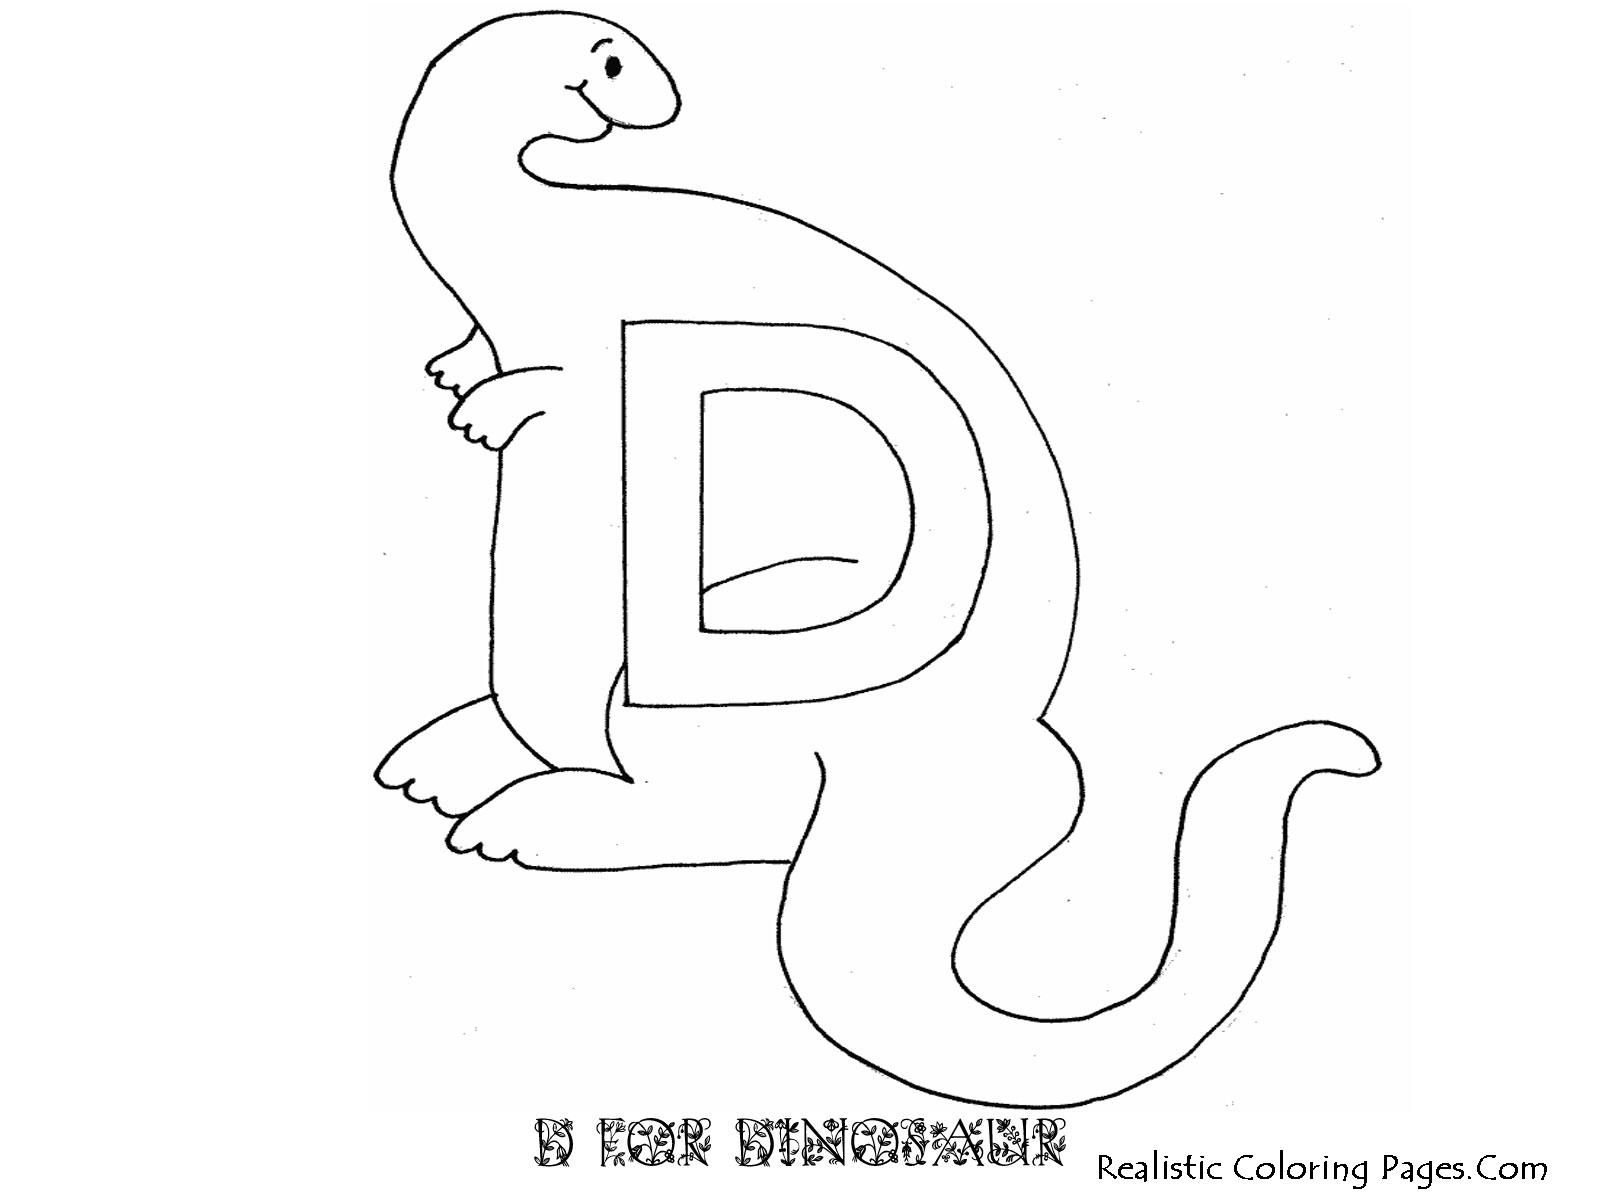 Alphabet Coloring Pages D For N 14th Alphabet Coloring Pages For Kids To Color And Print